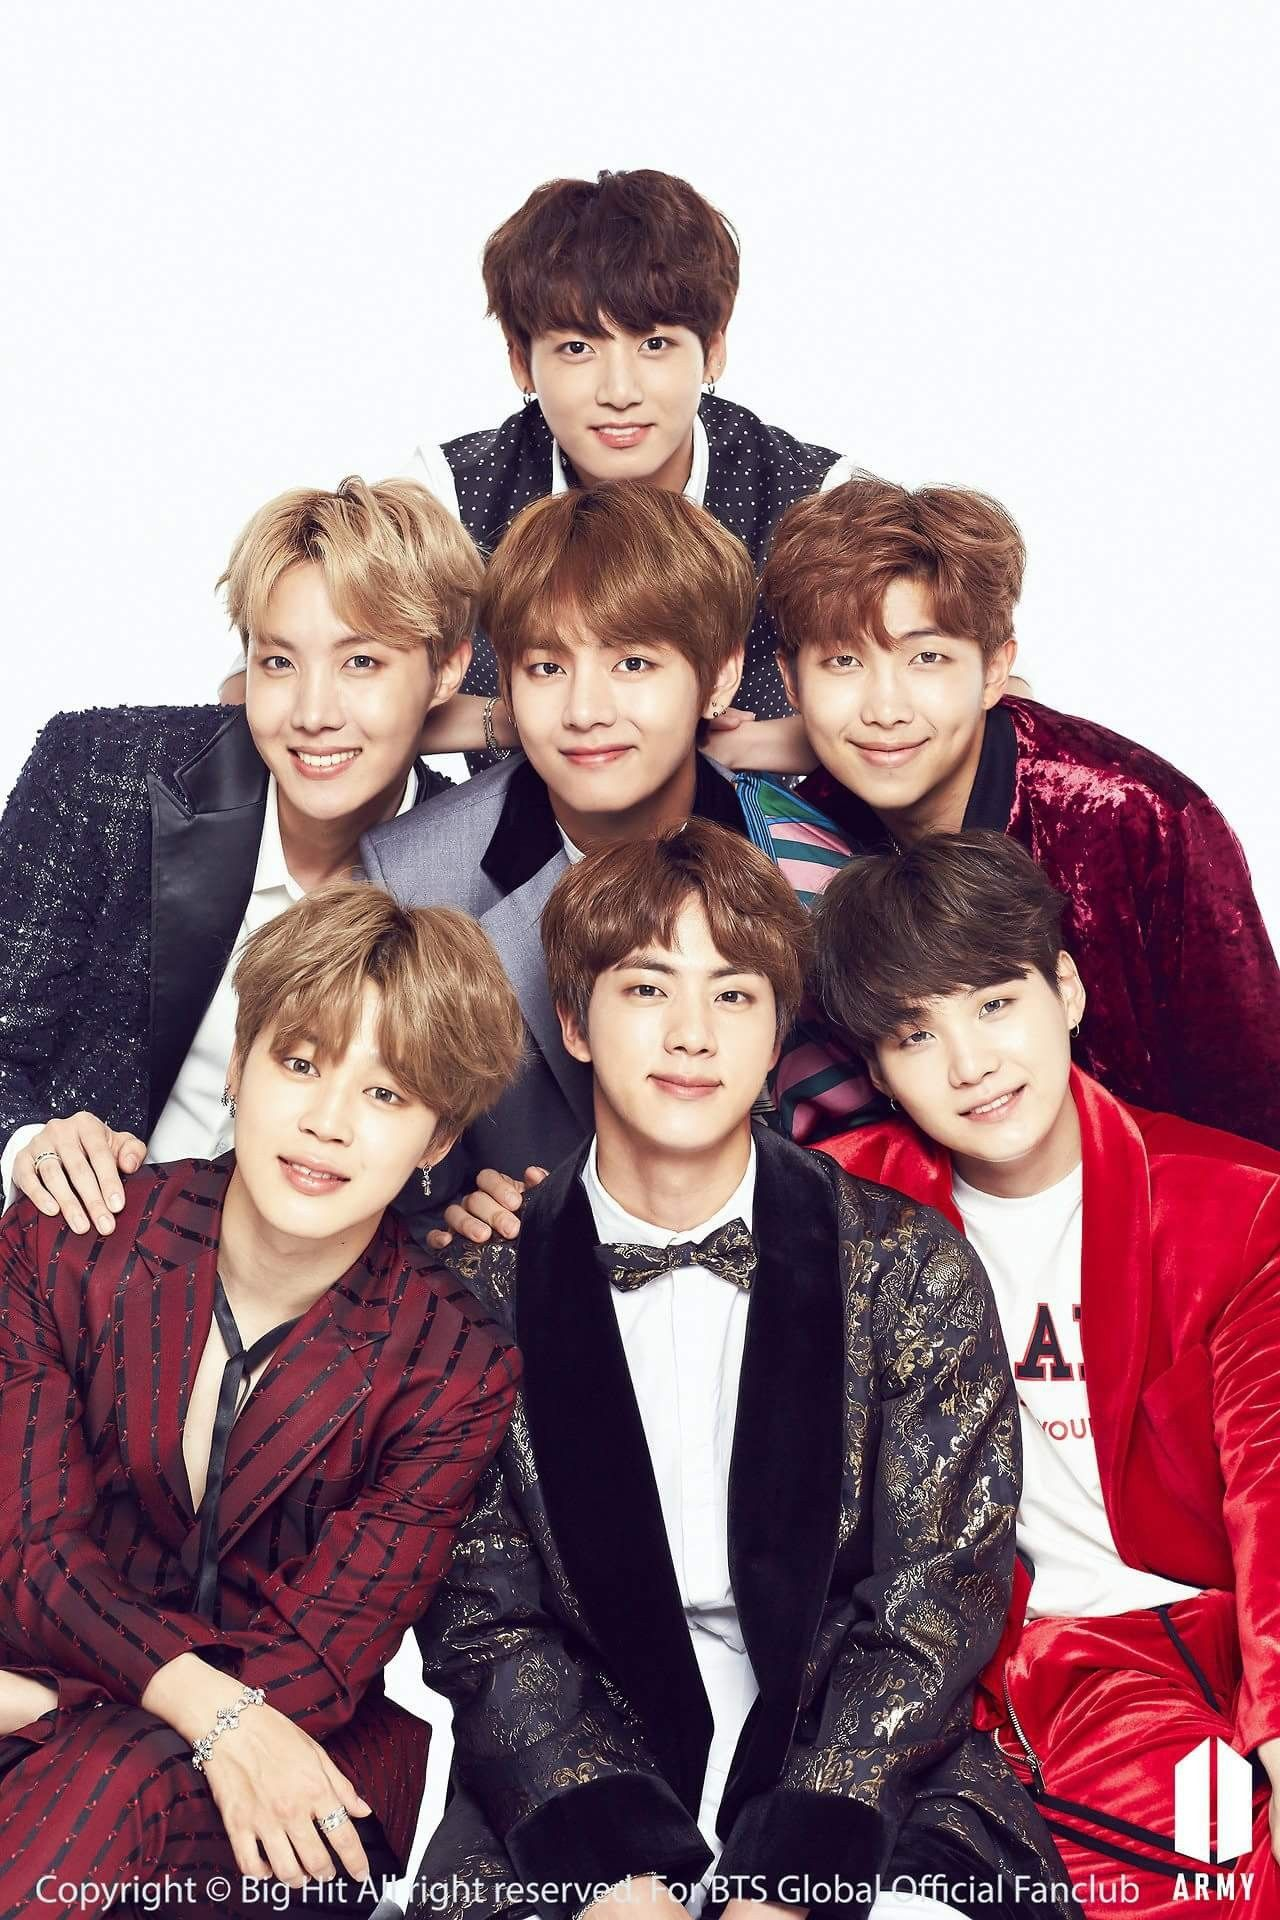 Bts Wallpaper Photoshoot 2018